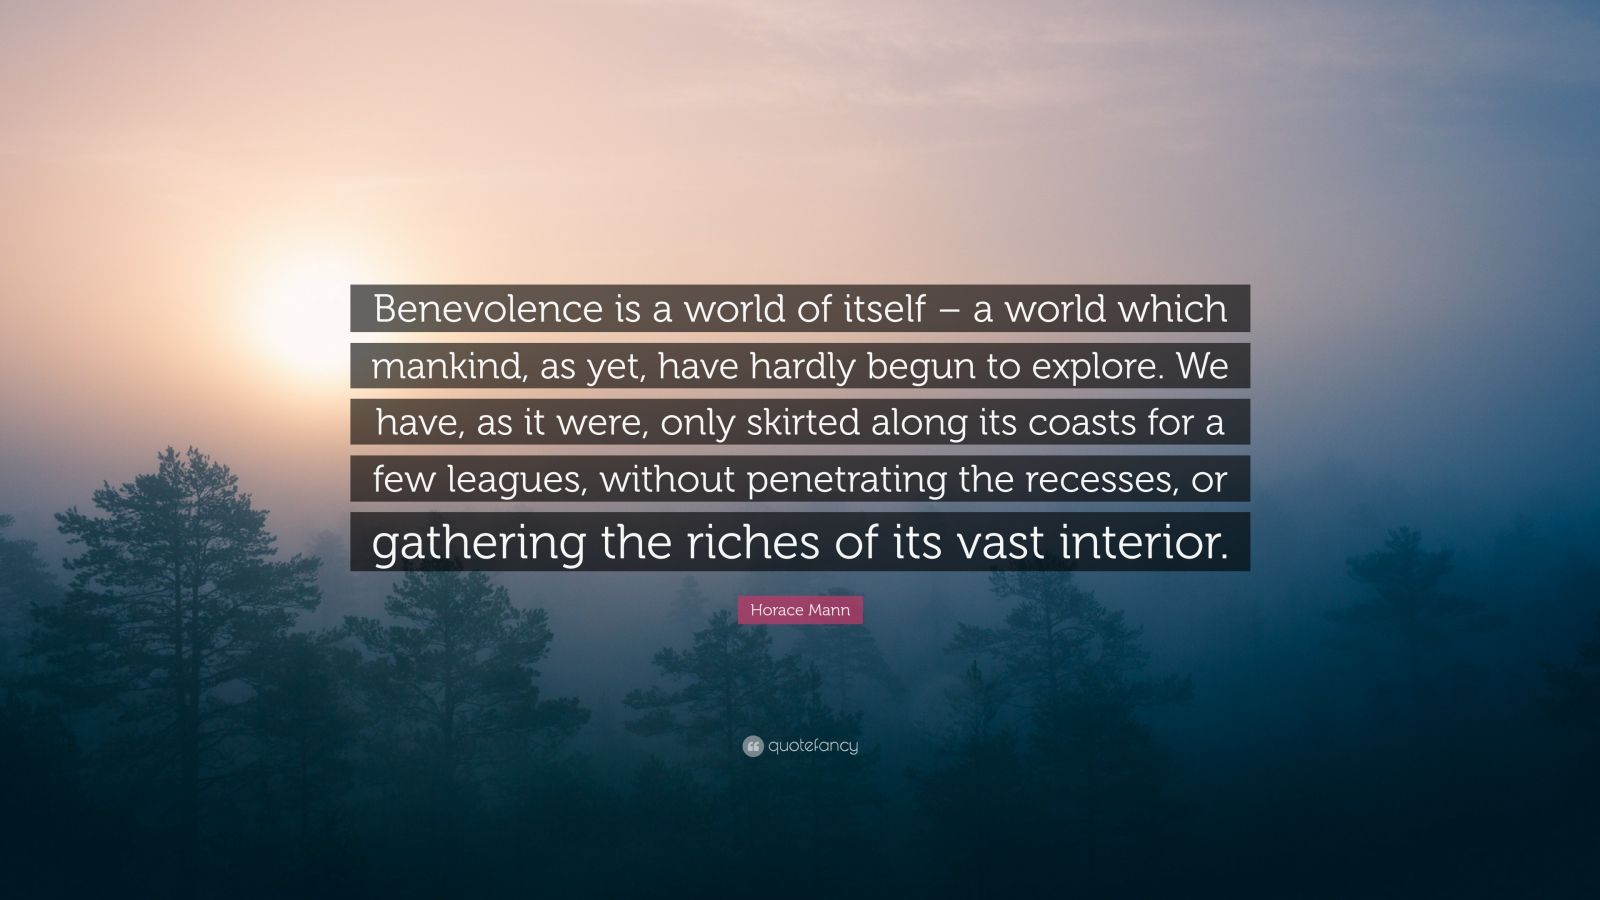 """Horace Mann Quote: """"Benevolence is a world of itself – a world which mankind, as yet, have hardly begun to explore. We have, as it were, only skirted along its coasts for a few leagues, without penetrating the recesses, or gathering the riches of its vast interior."""""""